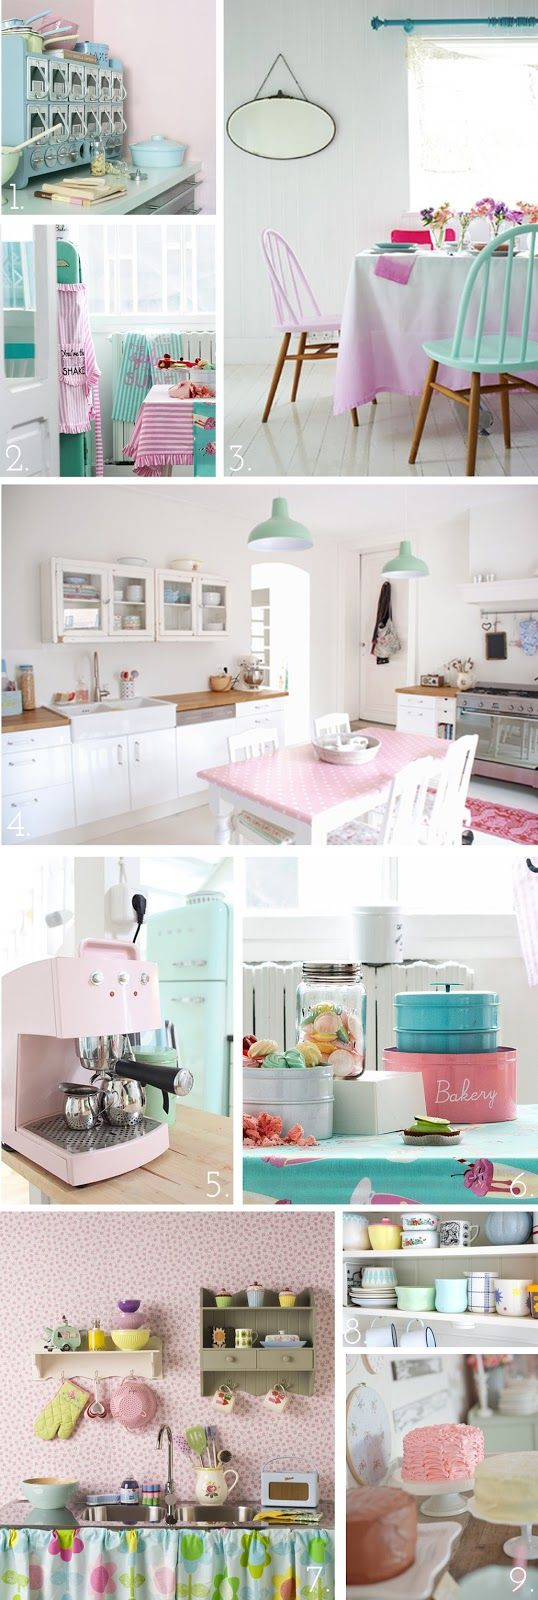 The Pink Doormat: Pretty Pastel Kitchen Inspiration